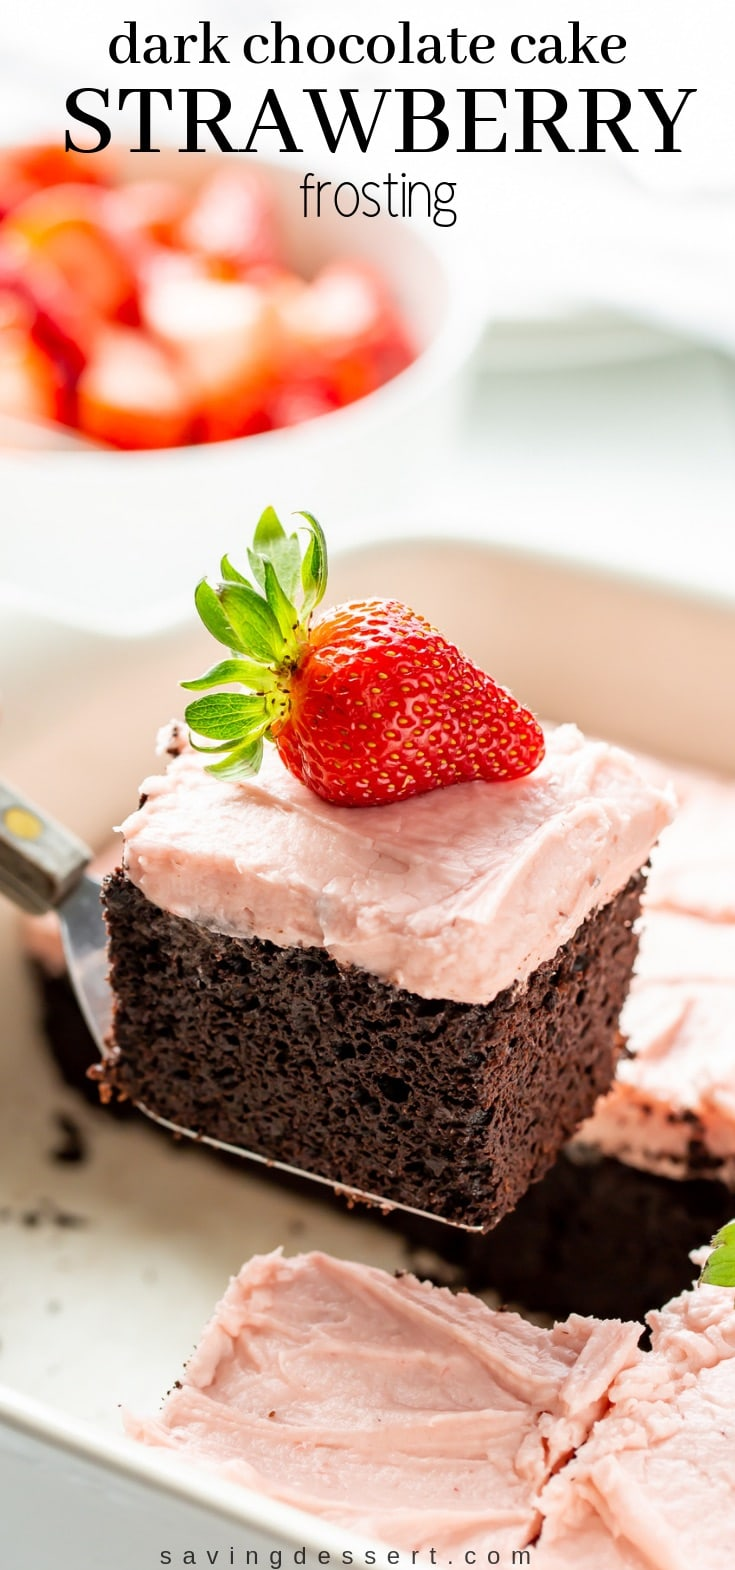 Enjoy this rich Dark Chocolate Sheet Cake slathered with fresh Strawberry Frosting -  a delicious match made in heaven! #darkchocolatecake #chocolatesheetcake #chocolatecake #strawberryicing #freshstrawberryfrosting #strawberryfrosting #strawberry